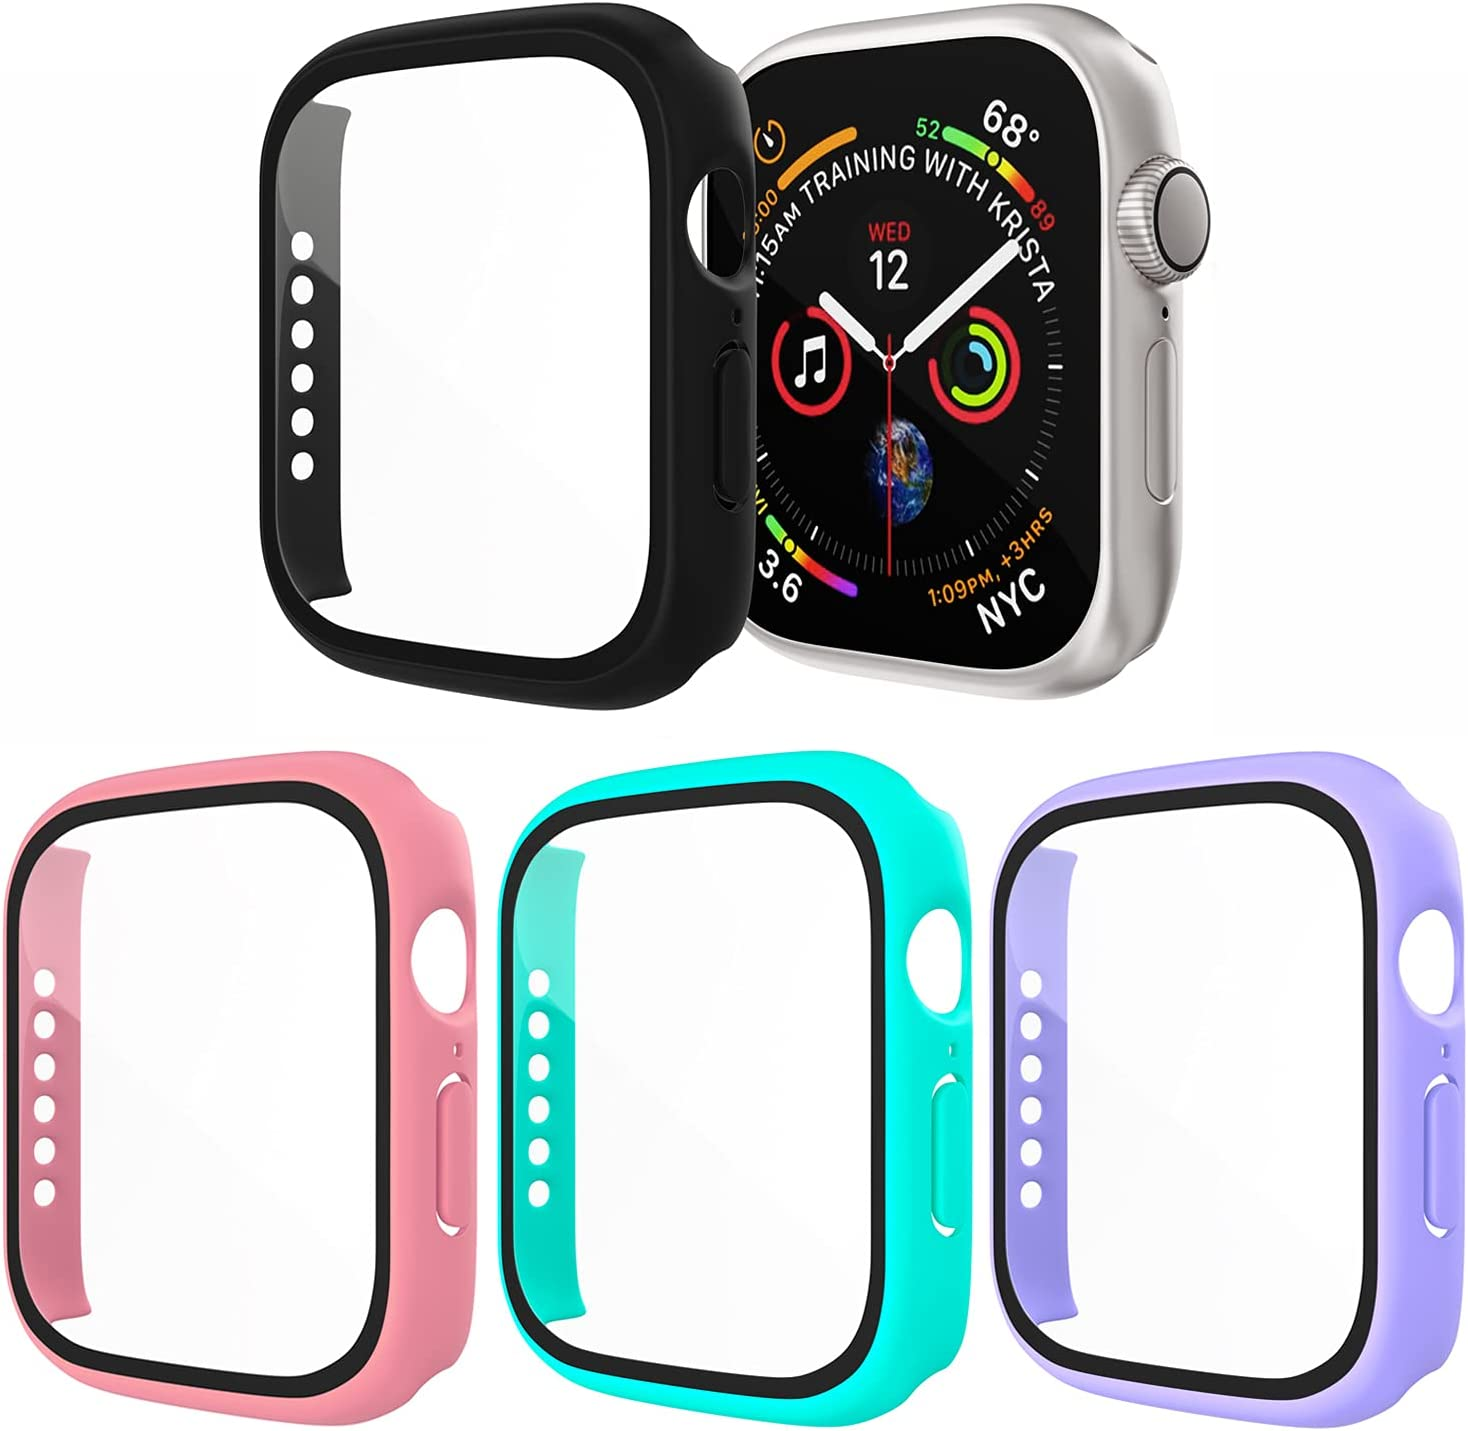 [4 Pack] Exclusives Compatible with Apple Watch 38mm Case, Full Coverage Bumper Protective Case with Screen Protector for Men Women iWatch Series 3/2/1, Black, Pink, Lavender, Turquoise